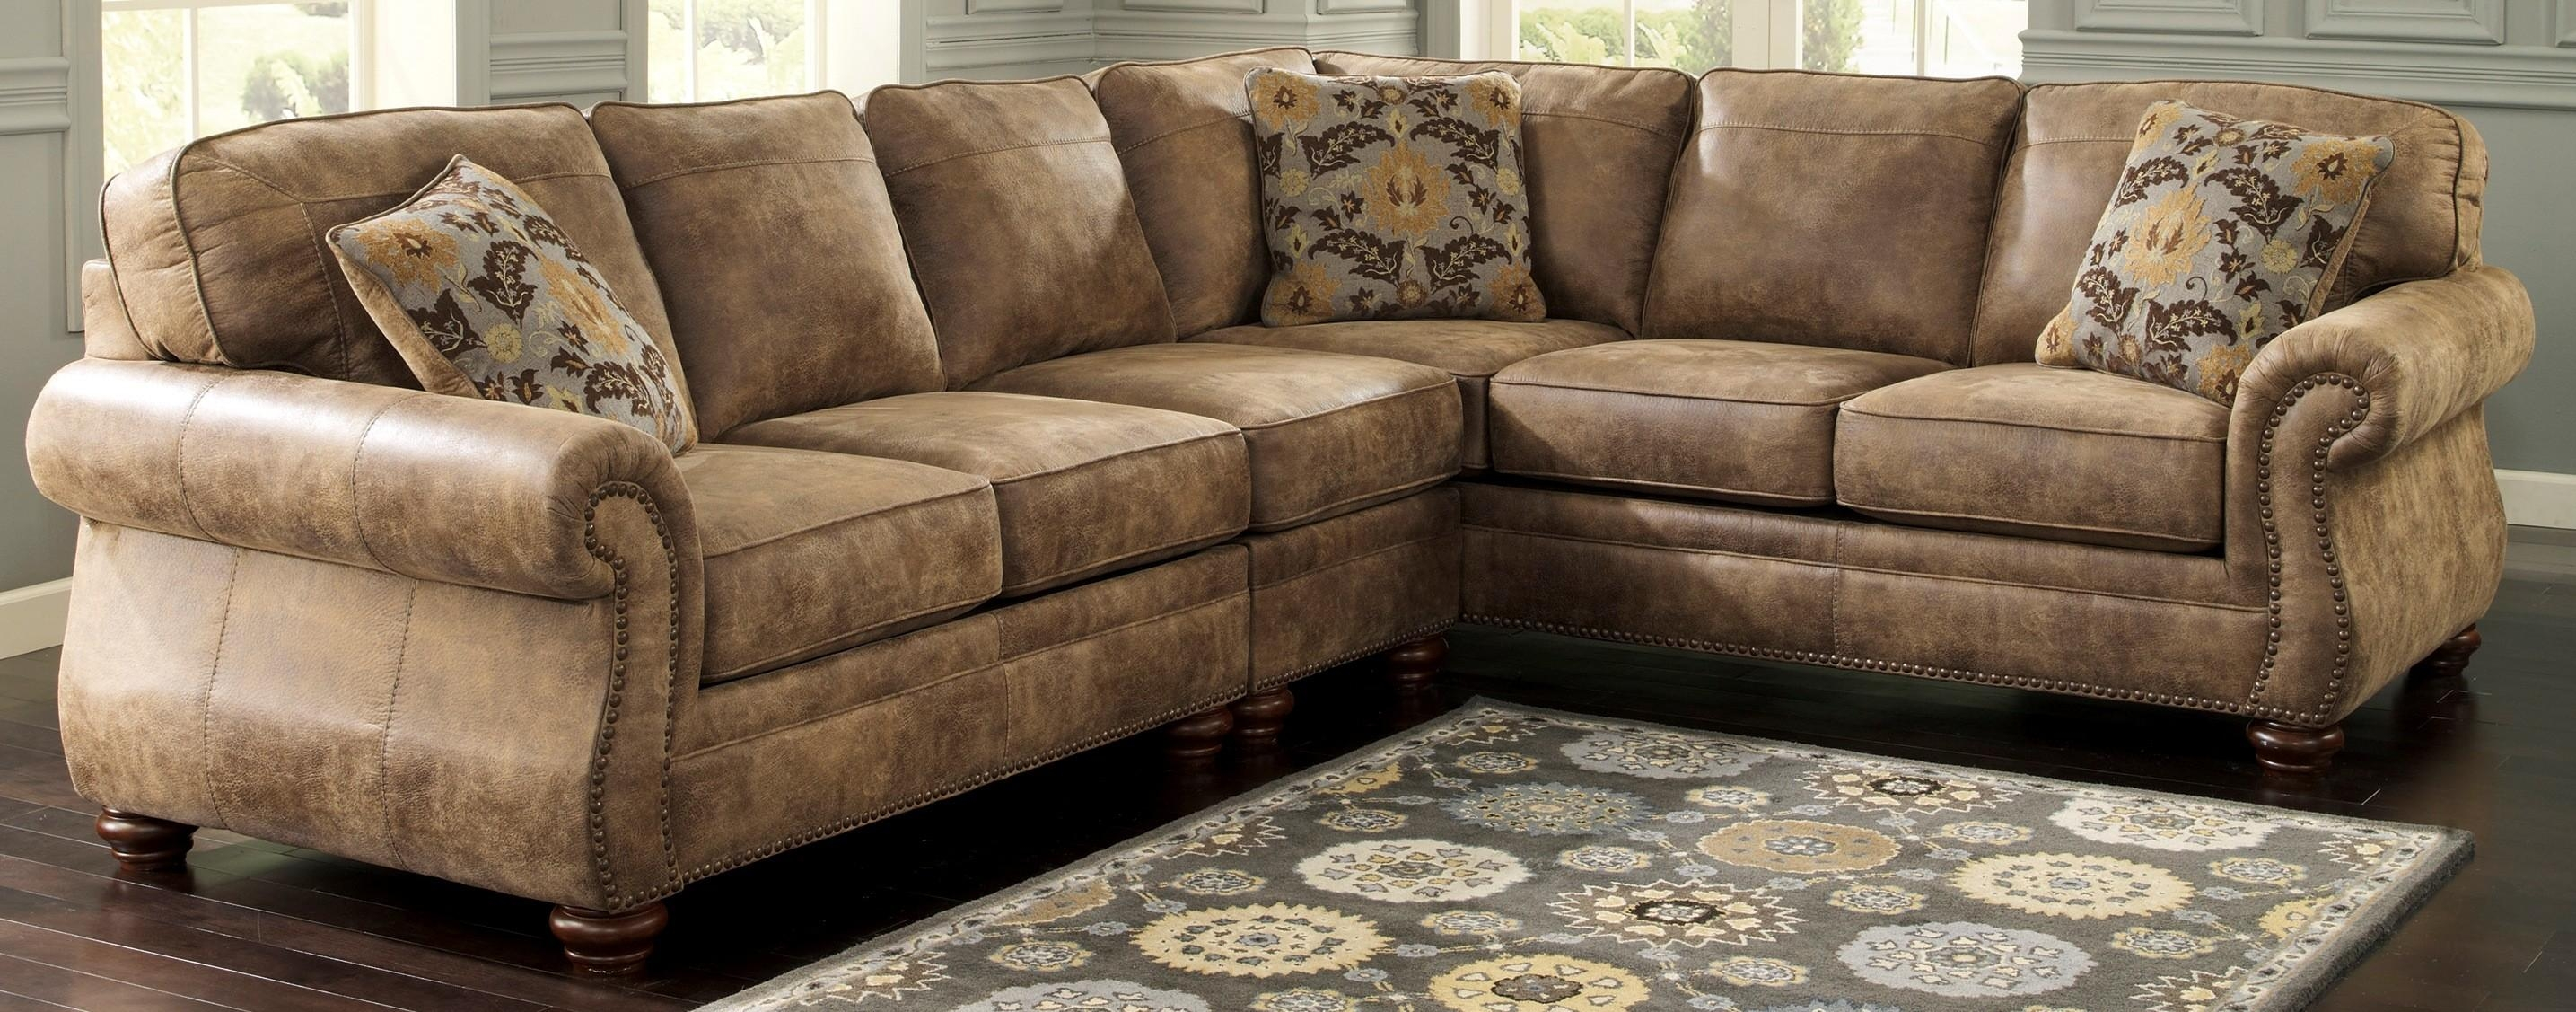 Ideas: Faux Leather Sectional Sofa Ashley And Ashley Sectional Within Ashley Faux Leather Sectional Sofas (Image 11 of 20)